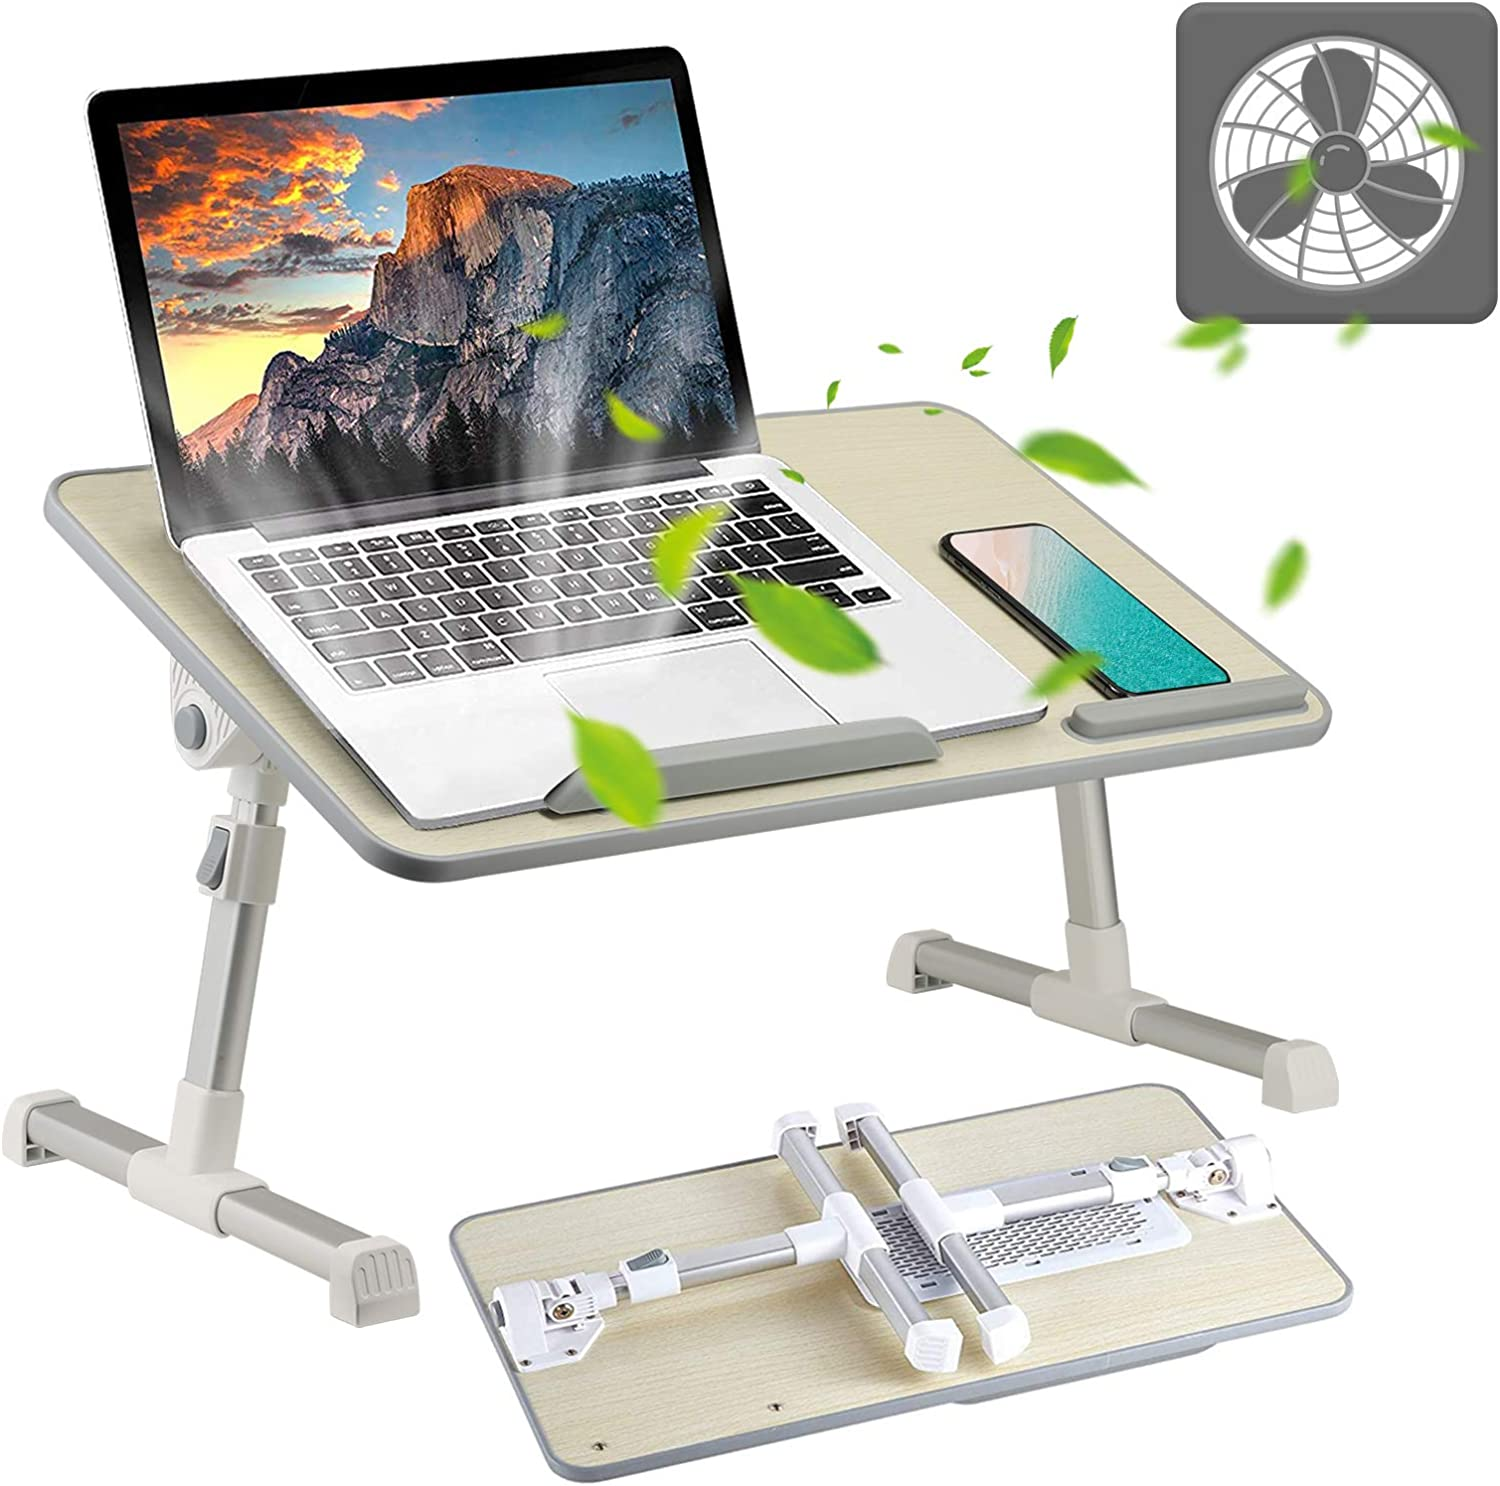 Multi-Angle Laptop Desk with Silent Adjustable Cooling USB Product Fan Selling